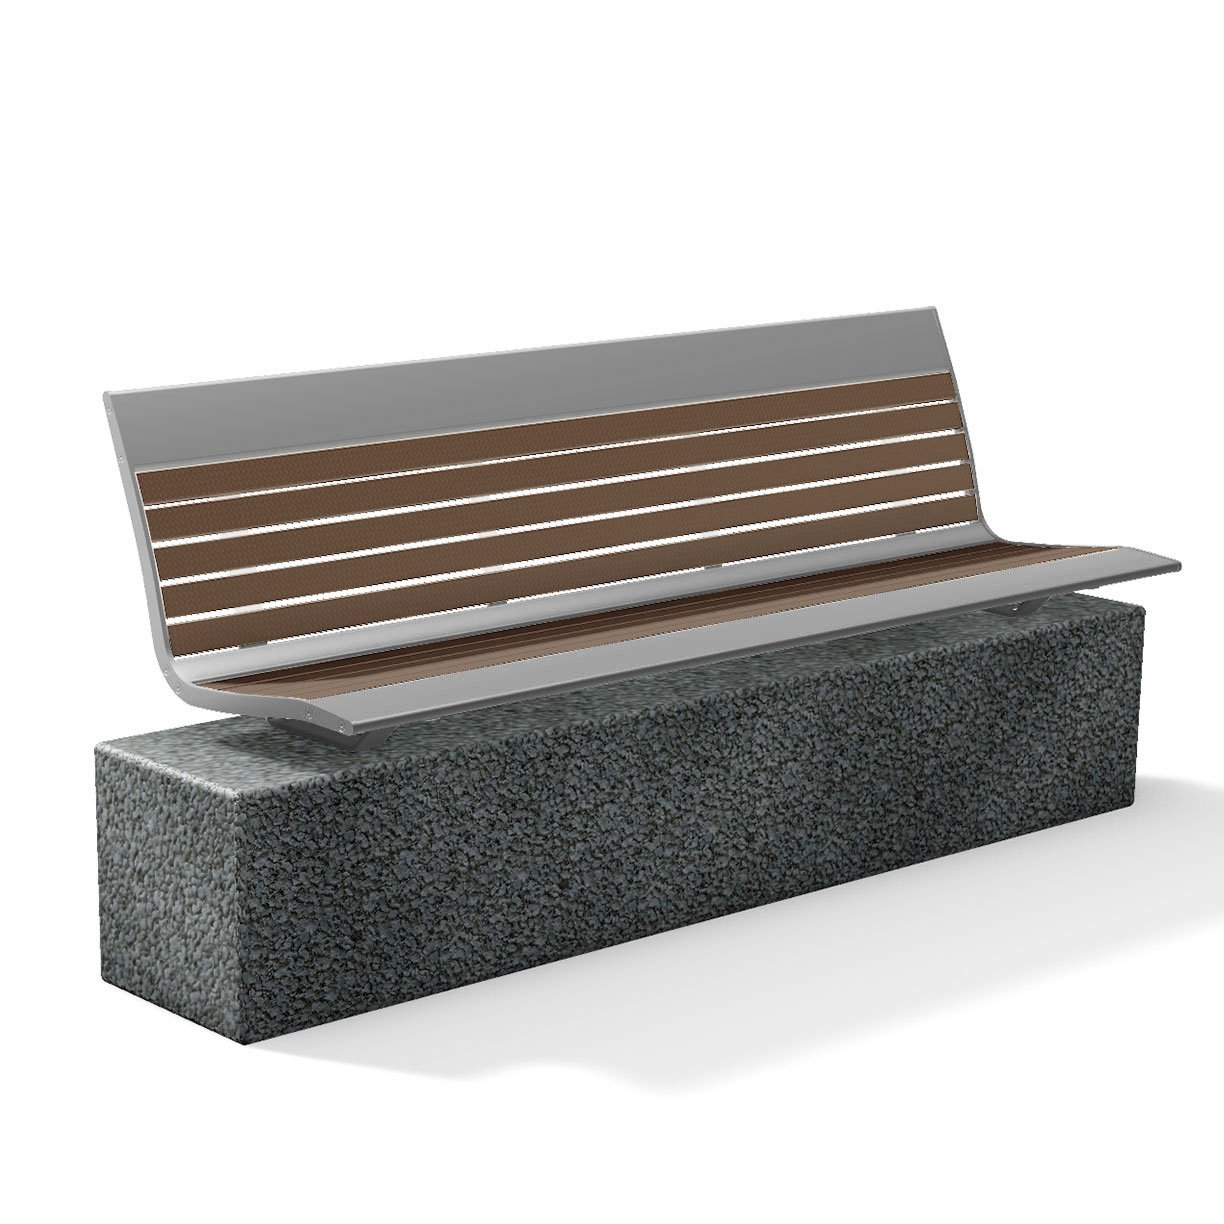 Marvelous Commercial Benches Outdoor Benches Park Benches Upbeat Andrewgaddart Wooden Chair Designs For Living Room Andrewgaddartcom